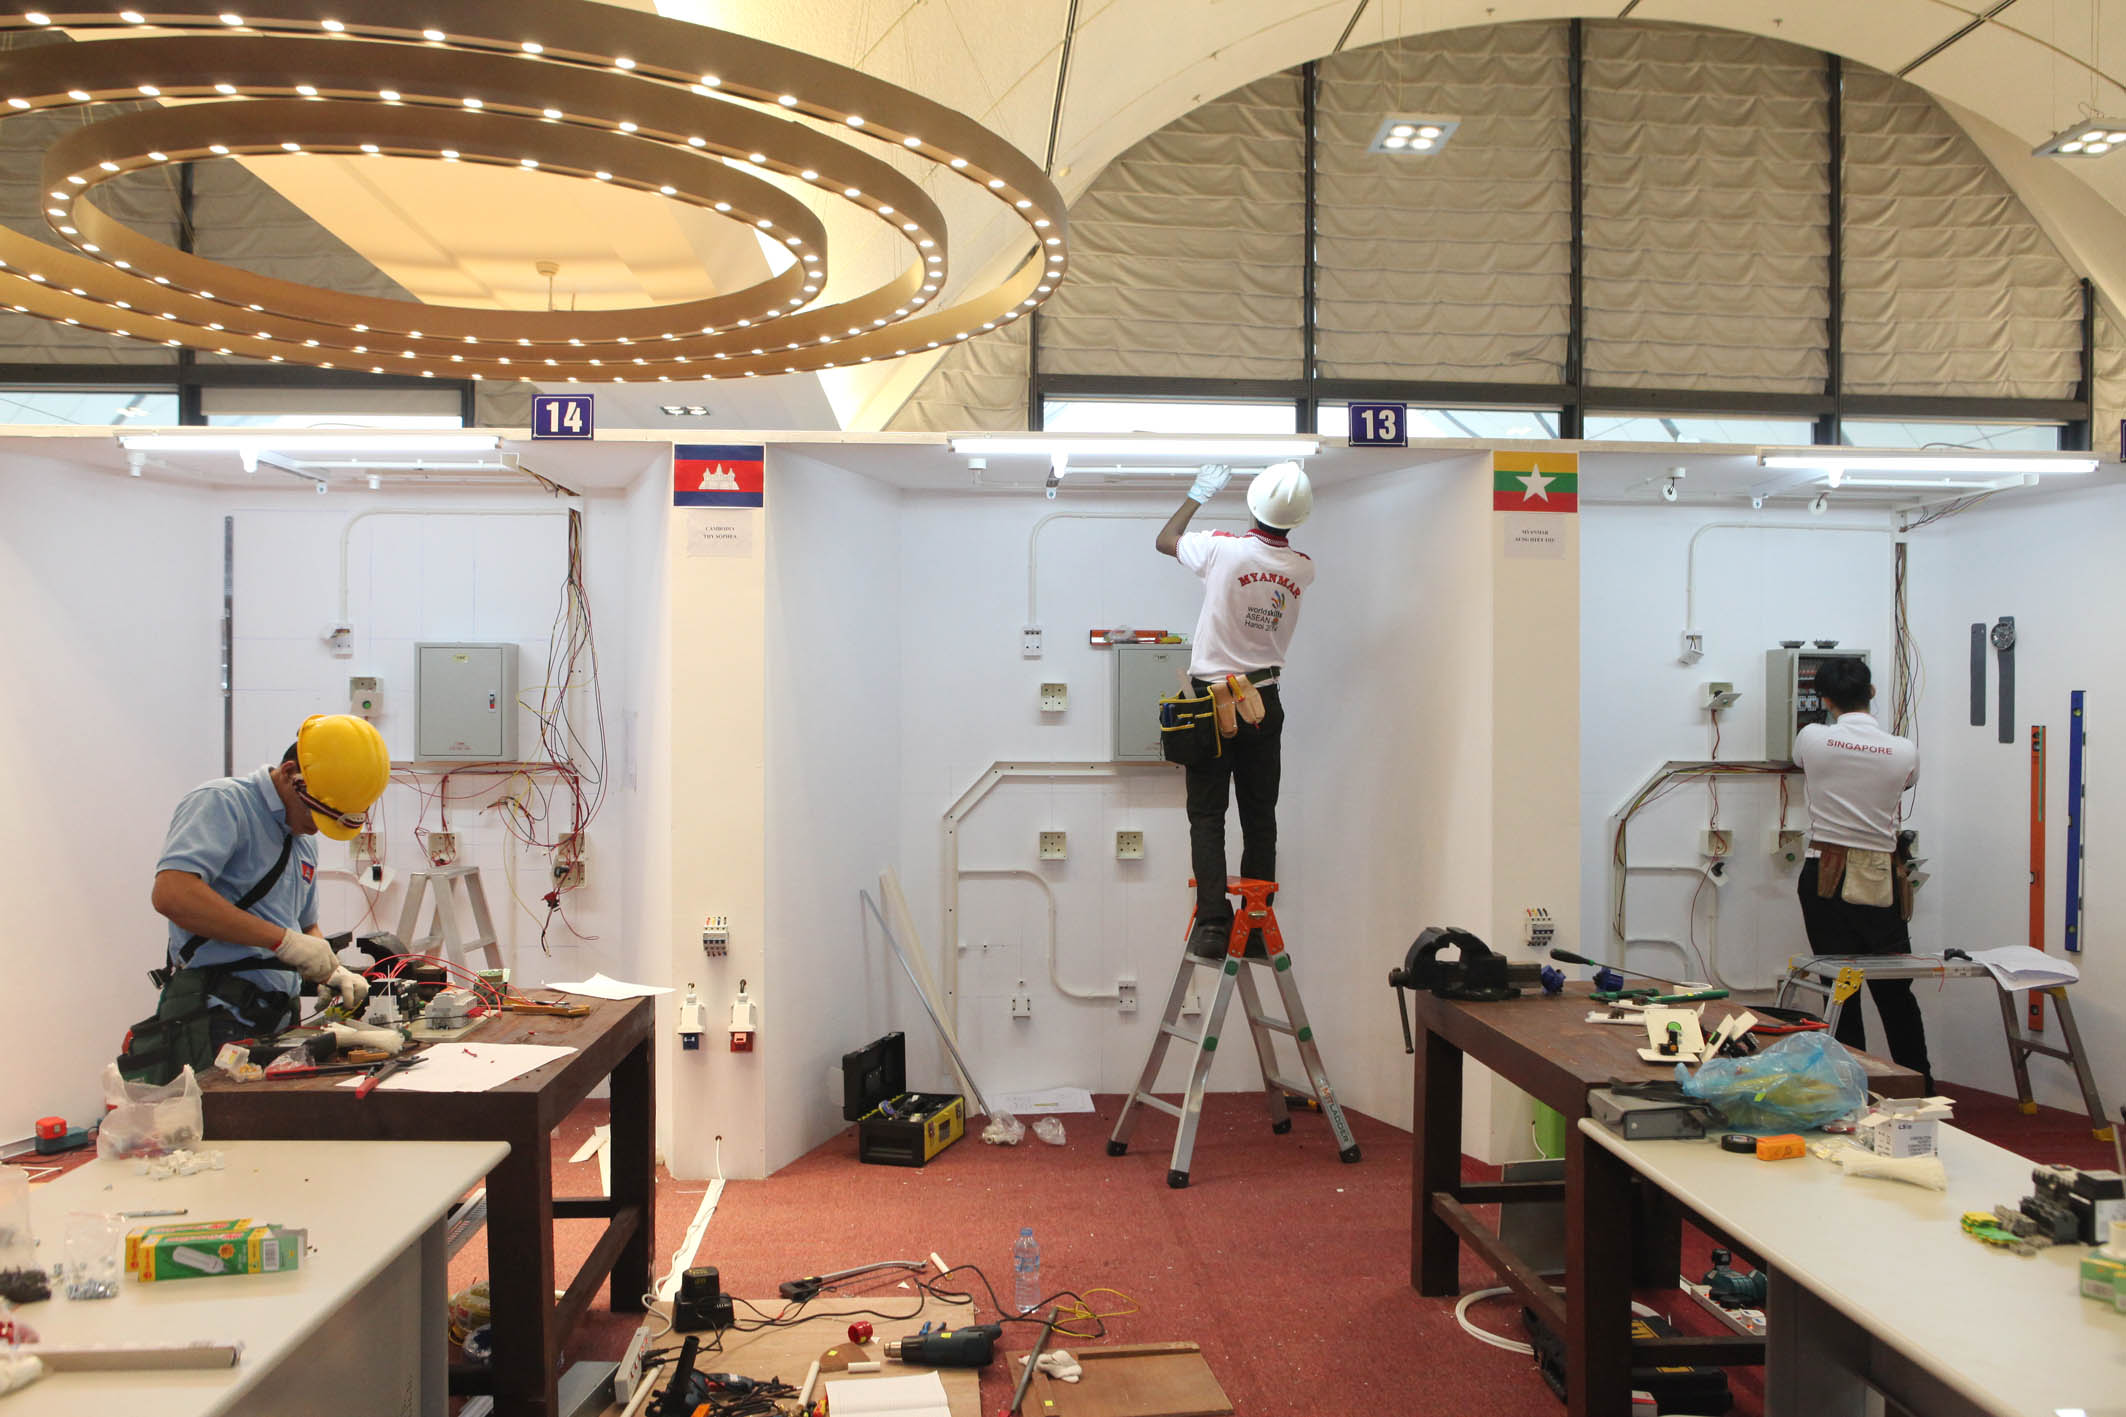 Contestants of electrical installation, Anh Tuan – Vietnam News Agency